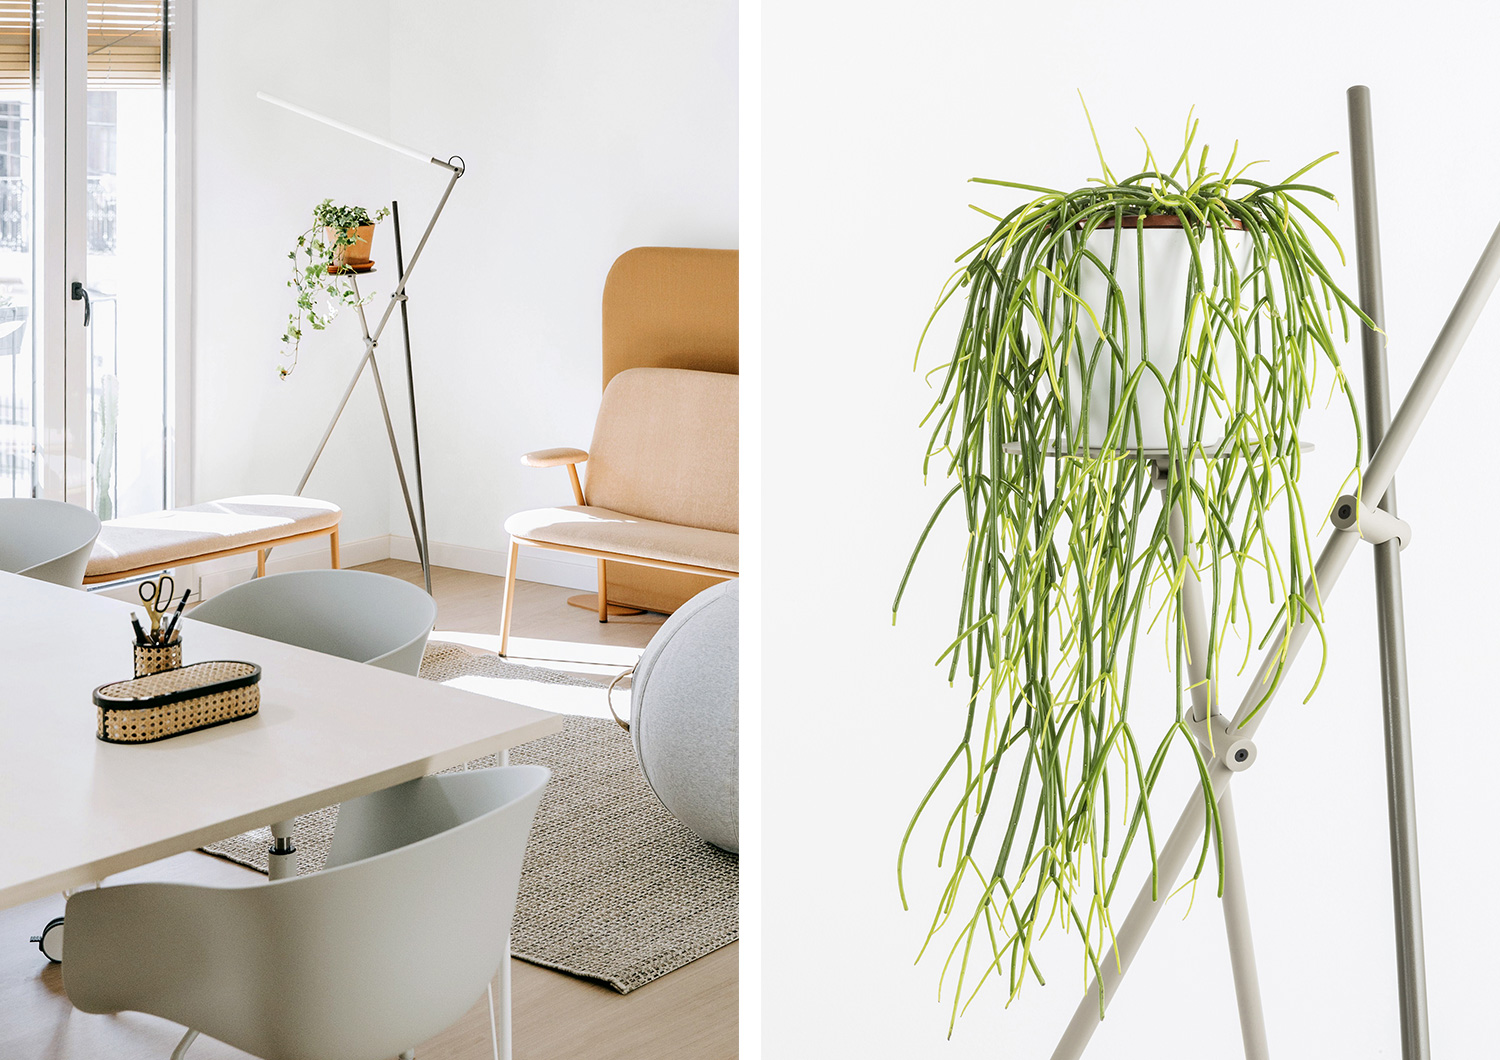 Integrate Lighting And Plants Gallery 03